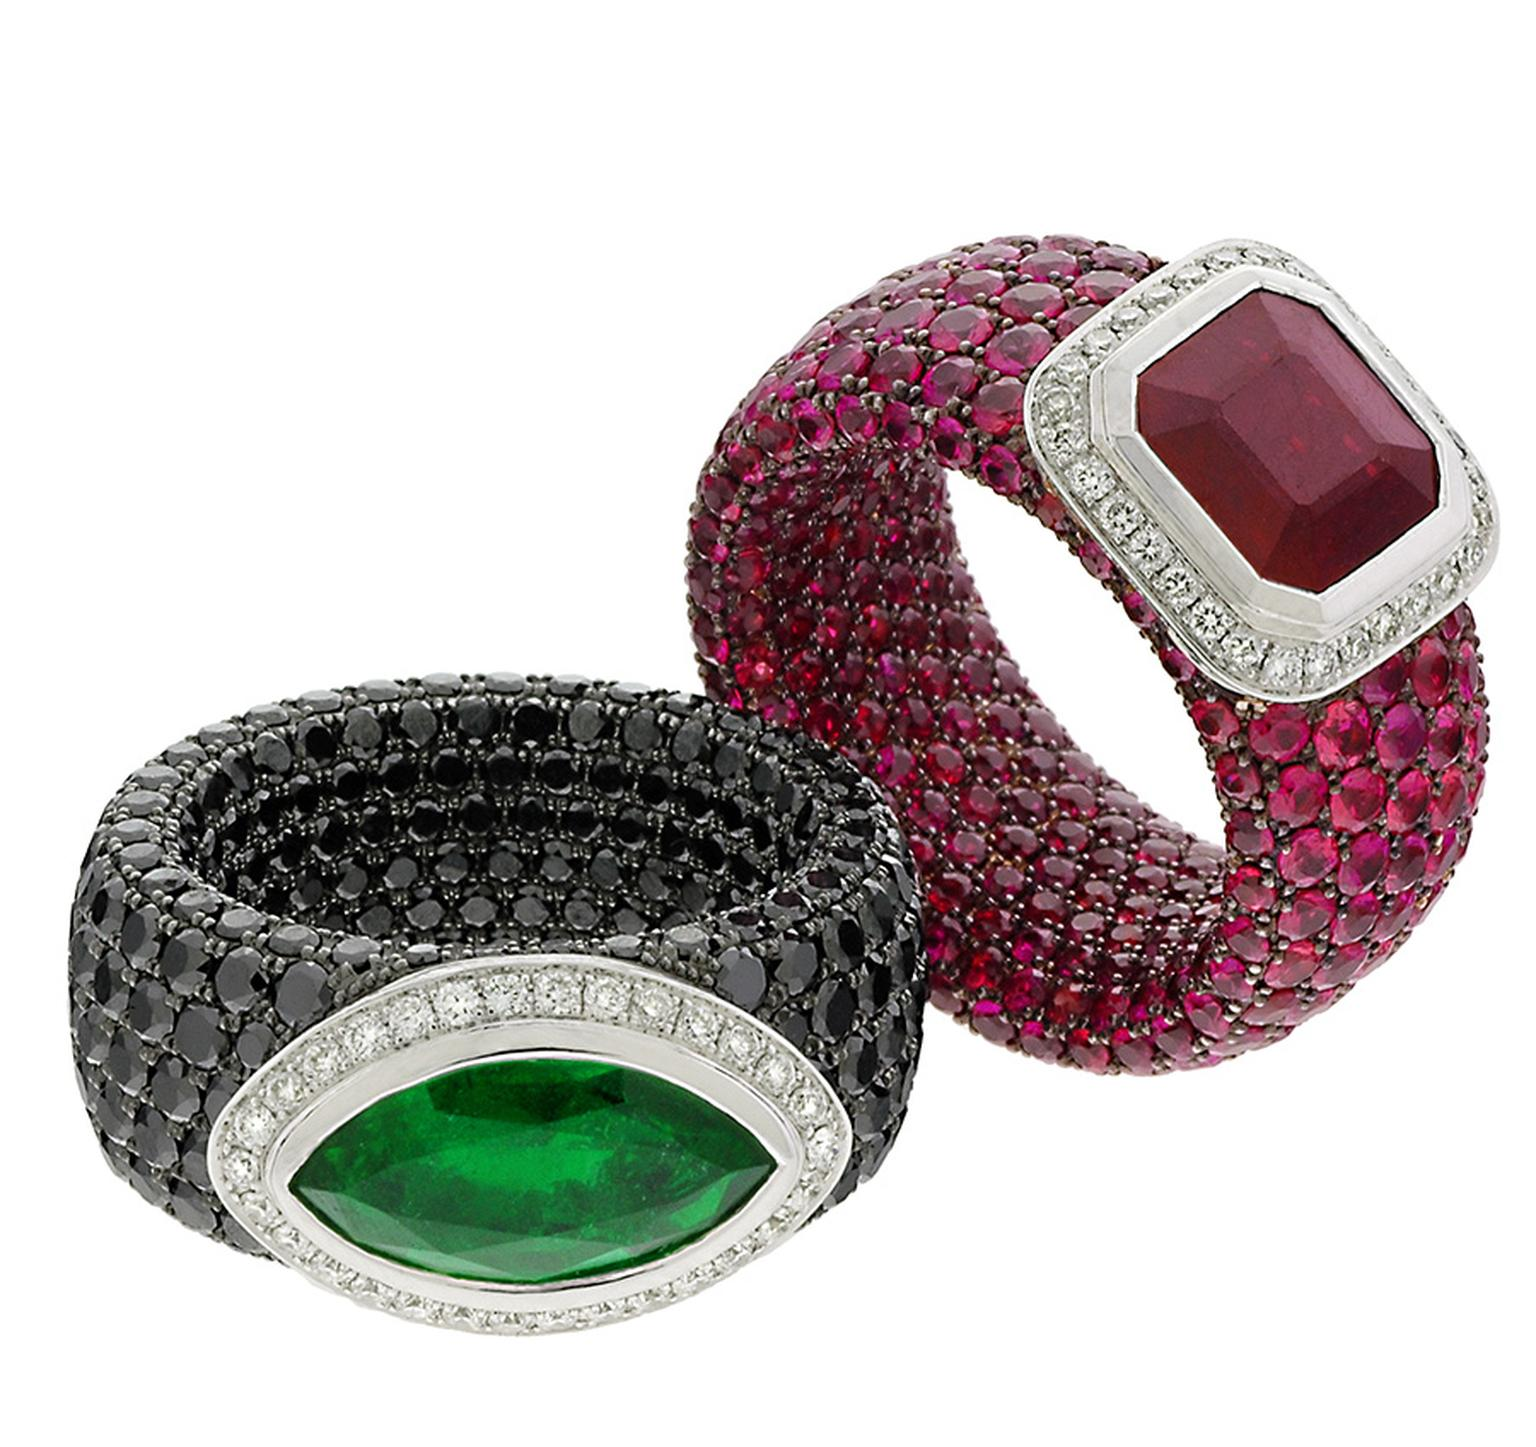 01-AVAKIAN-emerald-and-ruby-rings.jpg